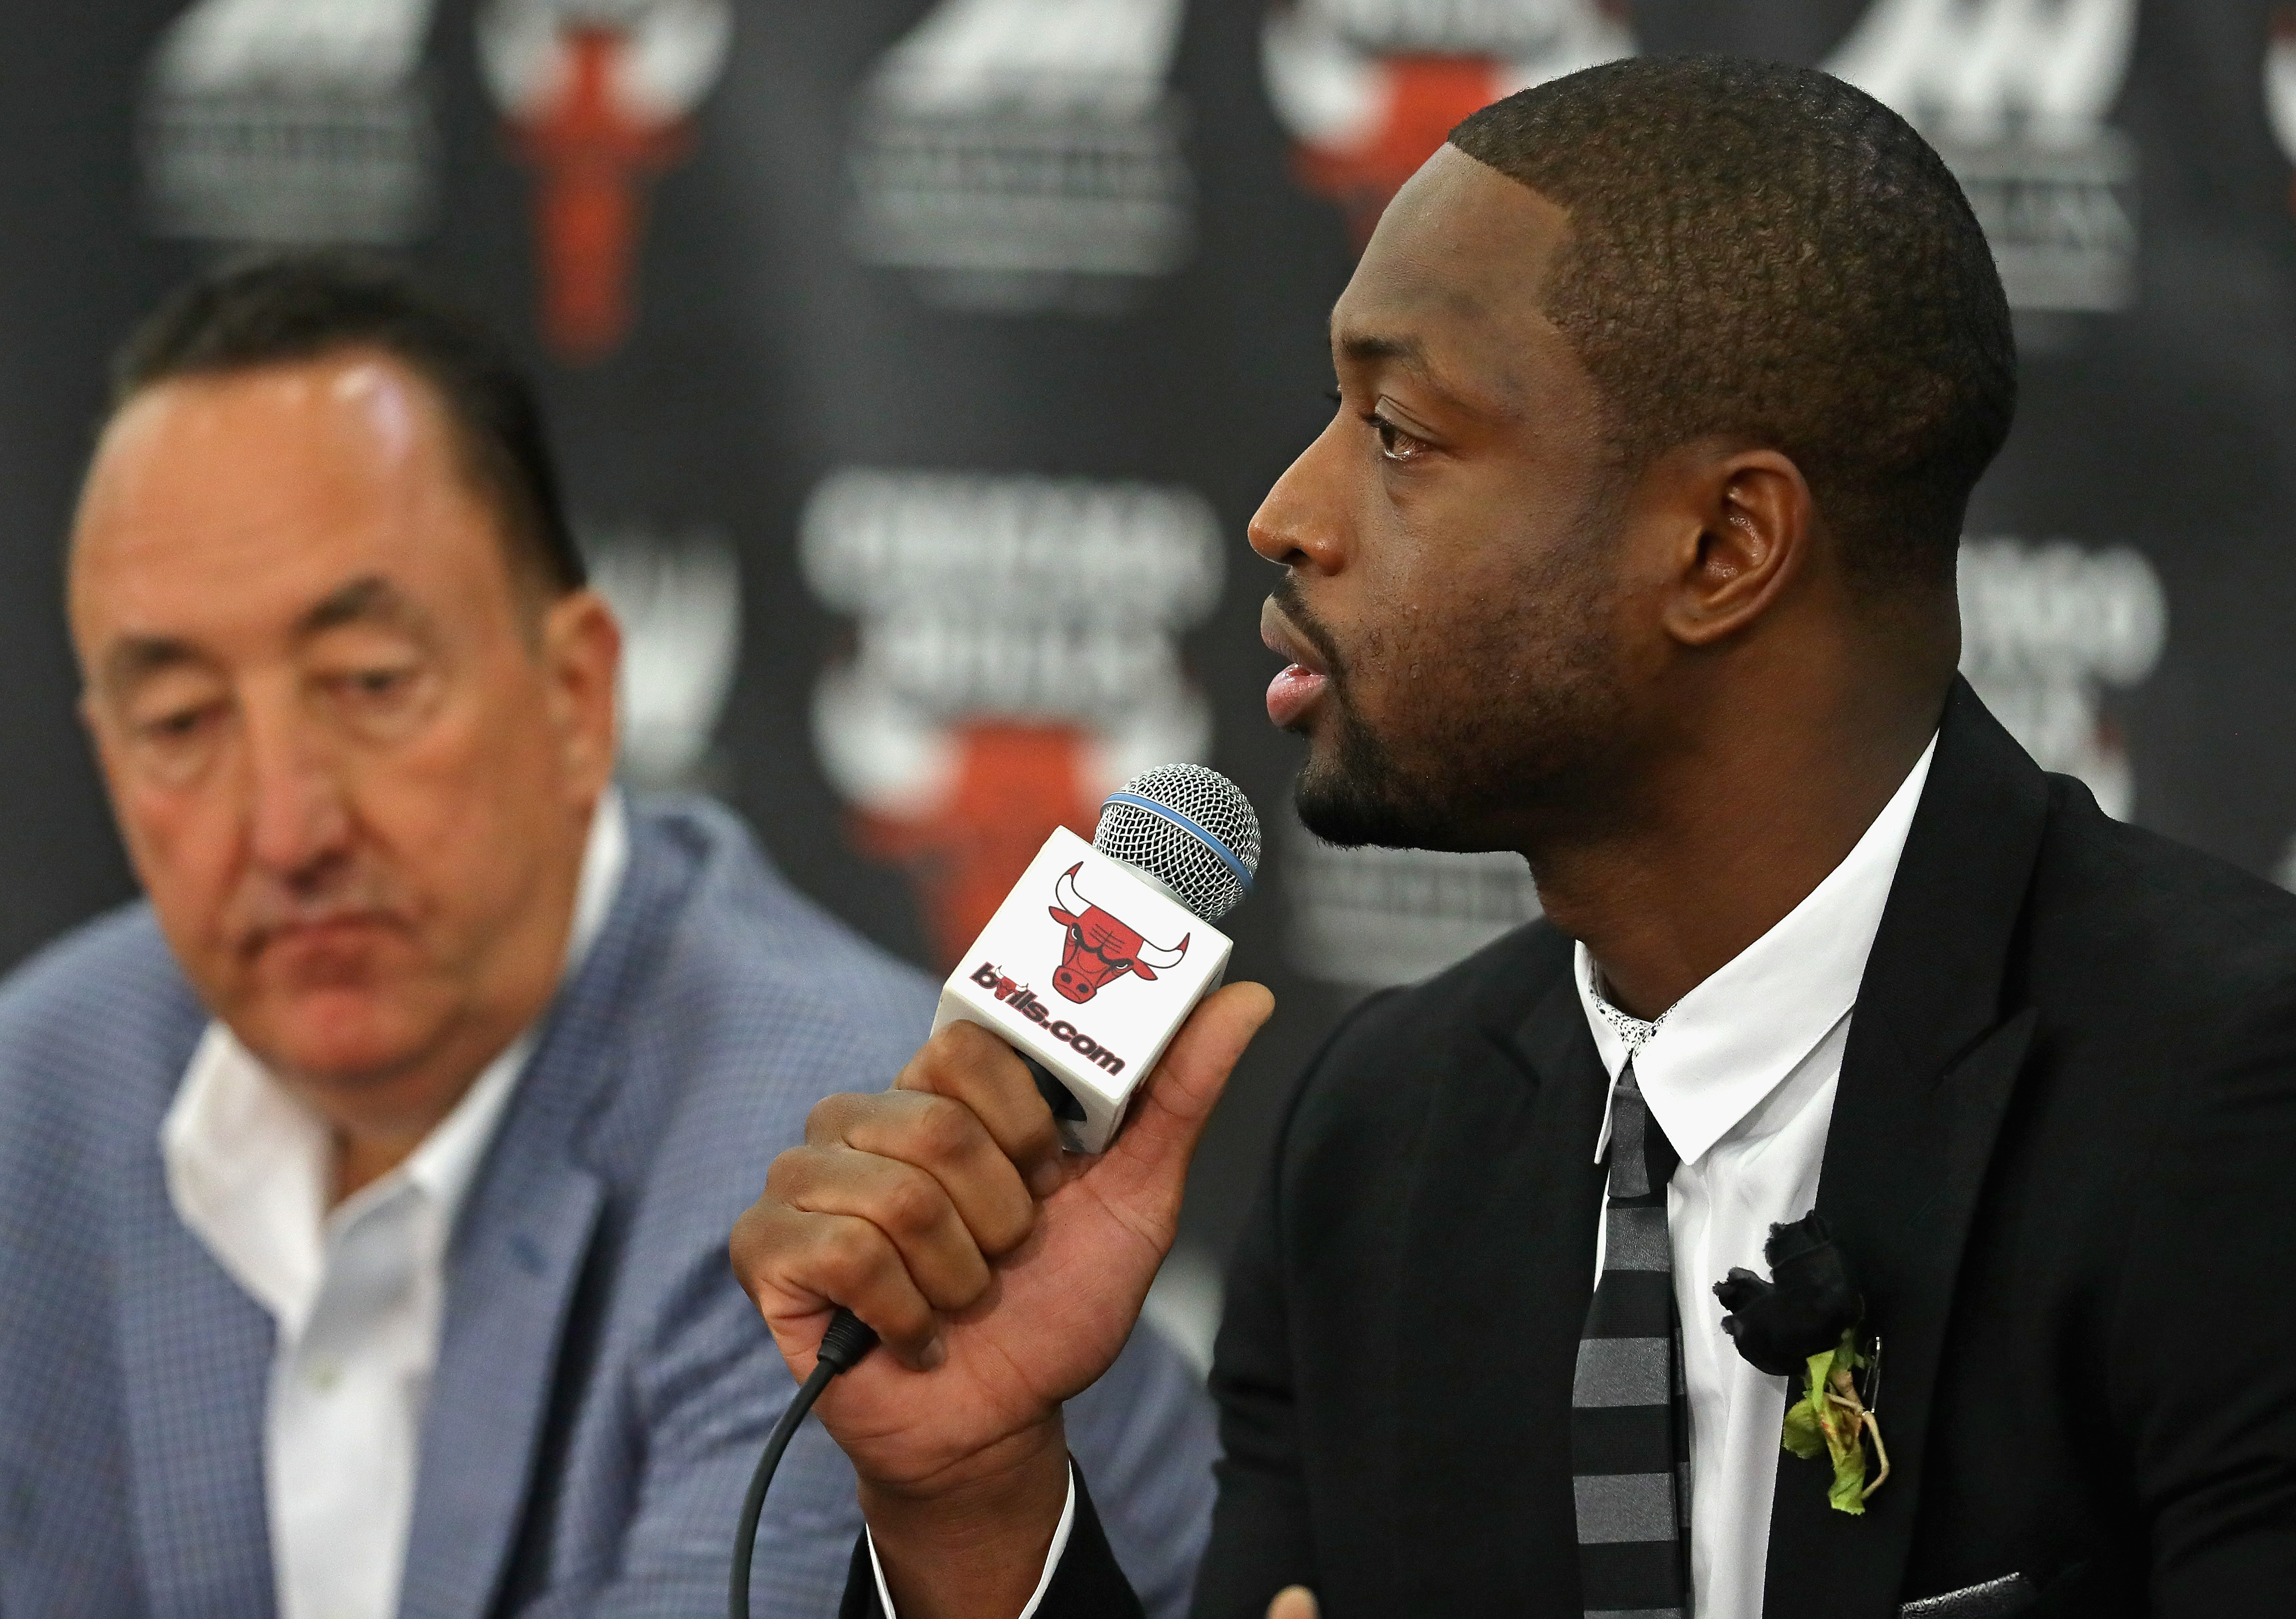 CHICAGO, IL - JULY 29:  General manager Gar Forman of the Chicago Bulls (L) listens as Dwyane Wade speaks during an introductory press conference at the Advocate Center on July 29, 2016 in Chicago, Illinois.  (Photo by Jonathan Daniel/Getty Images)